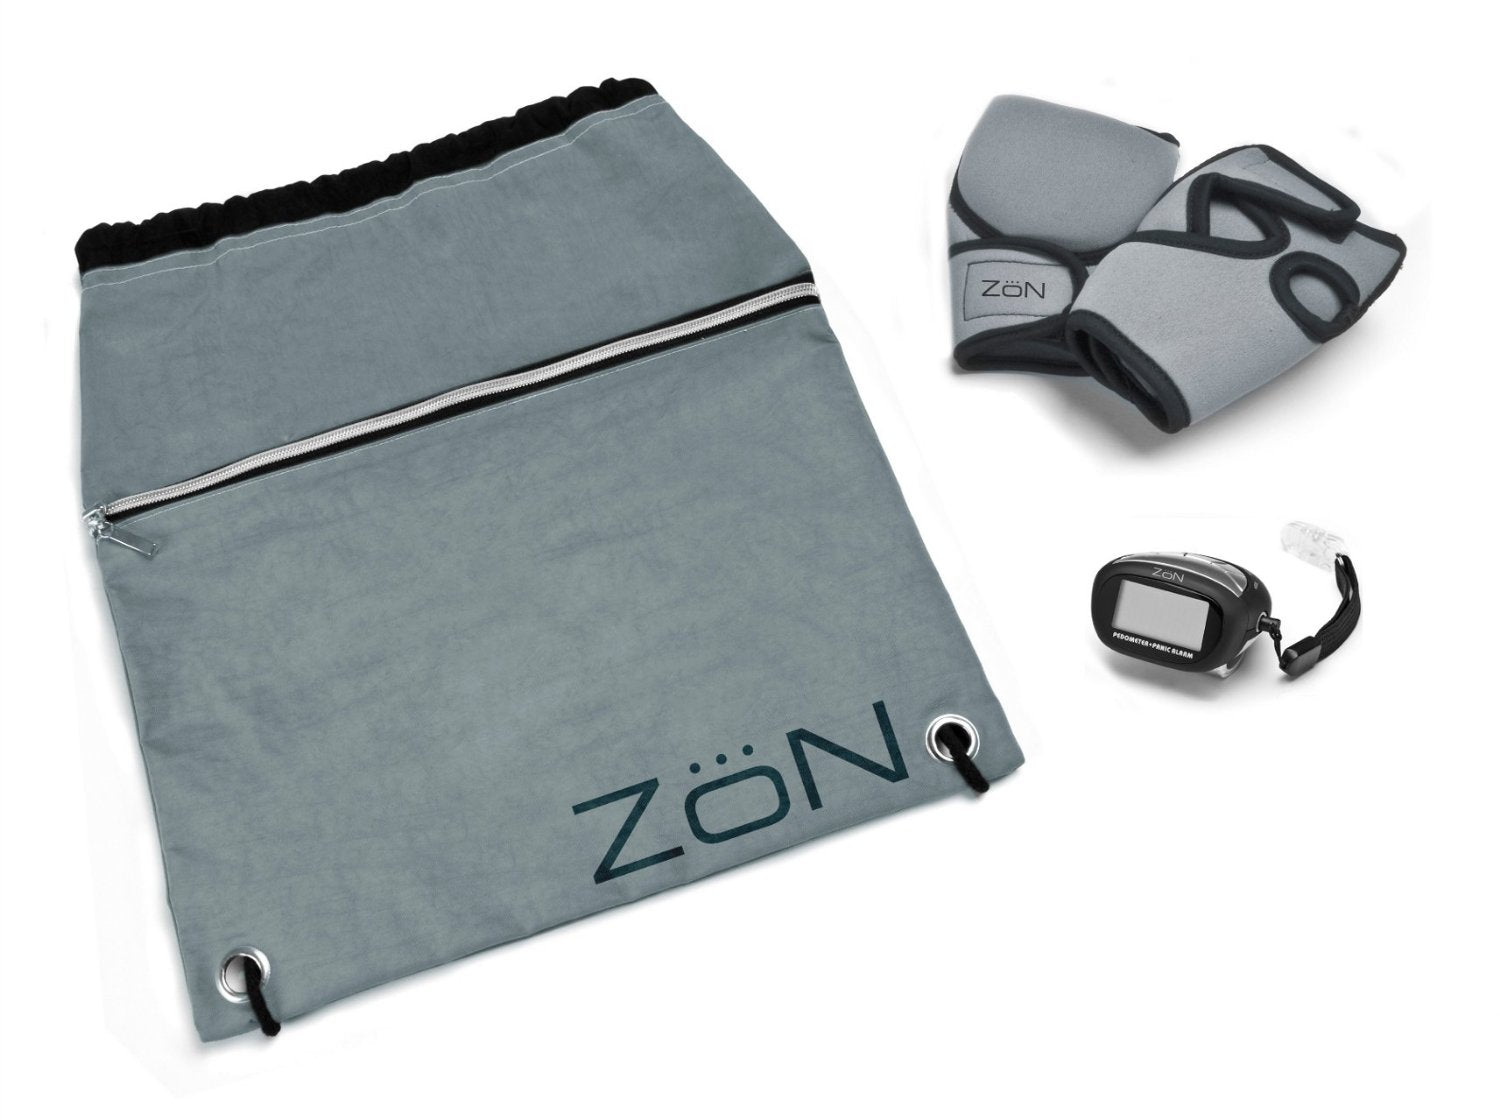 ZoN Deluxe Walking Kit weights gloves and pedometer